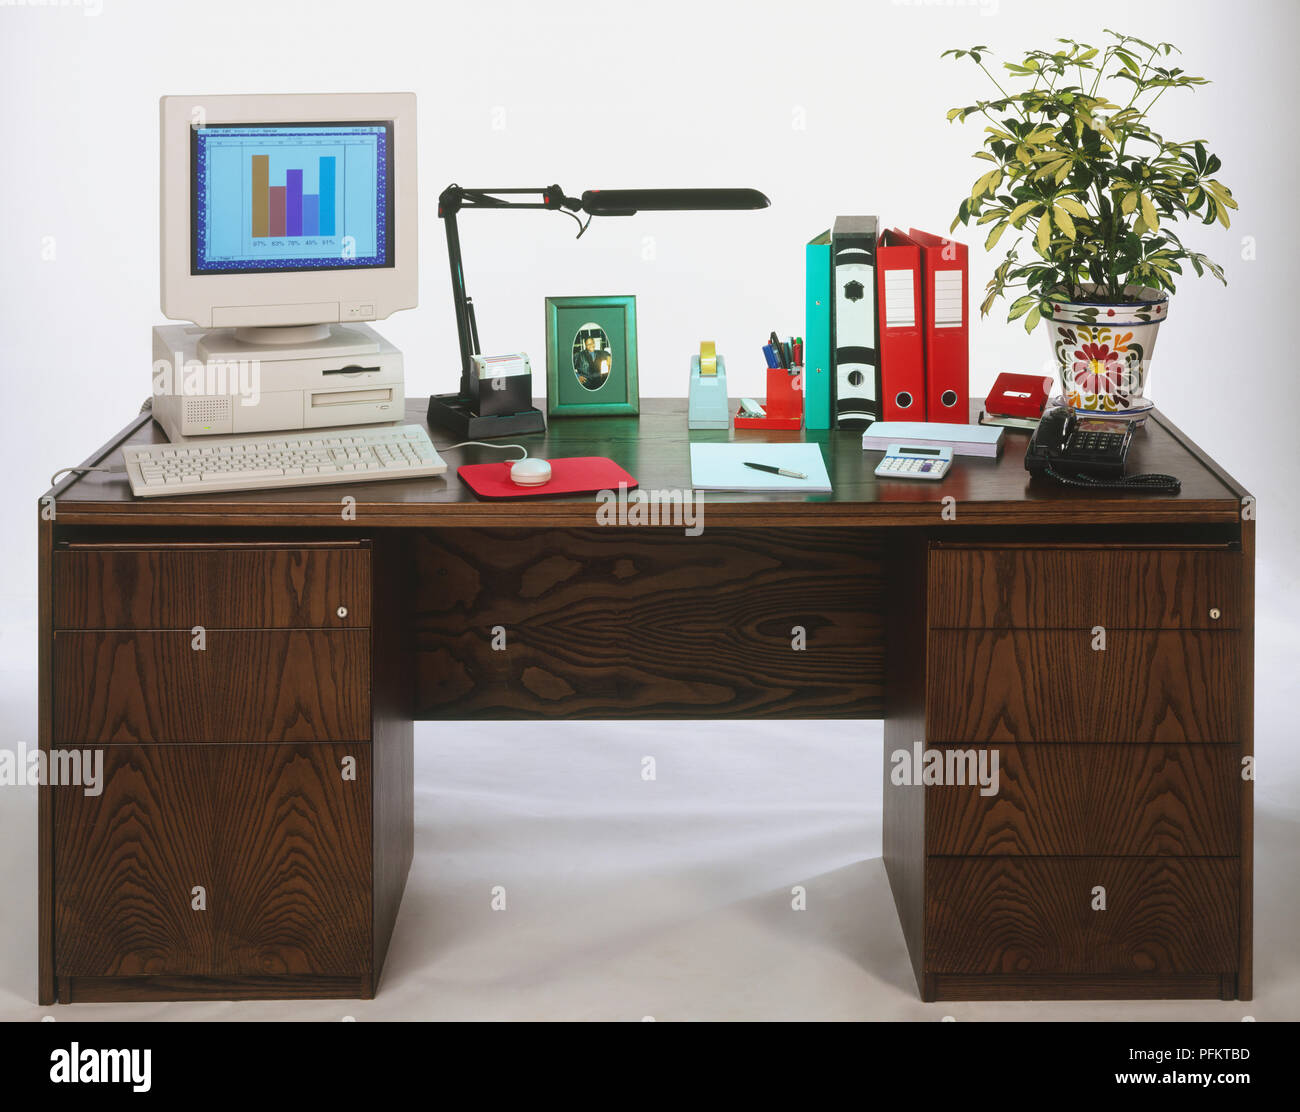 Desk top computer, desk lamp, framed picture, pocket calculator, telephone, various stationery and a houseplant on a wooden desk - Stock Image